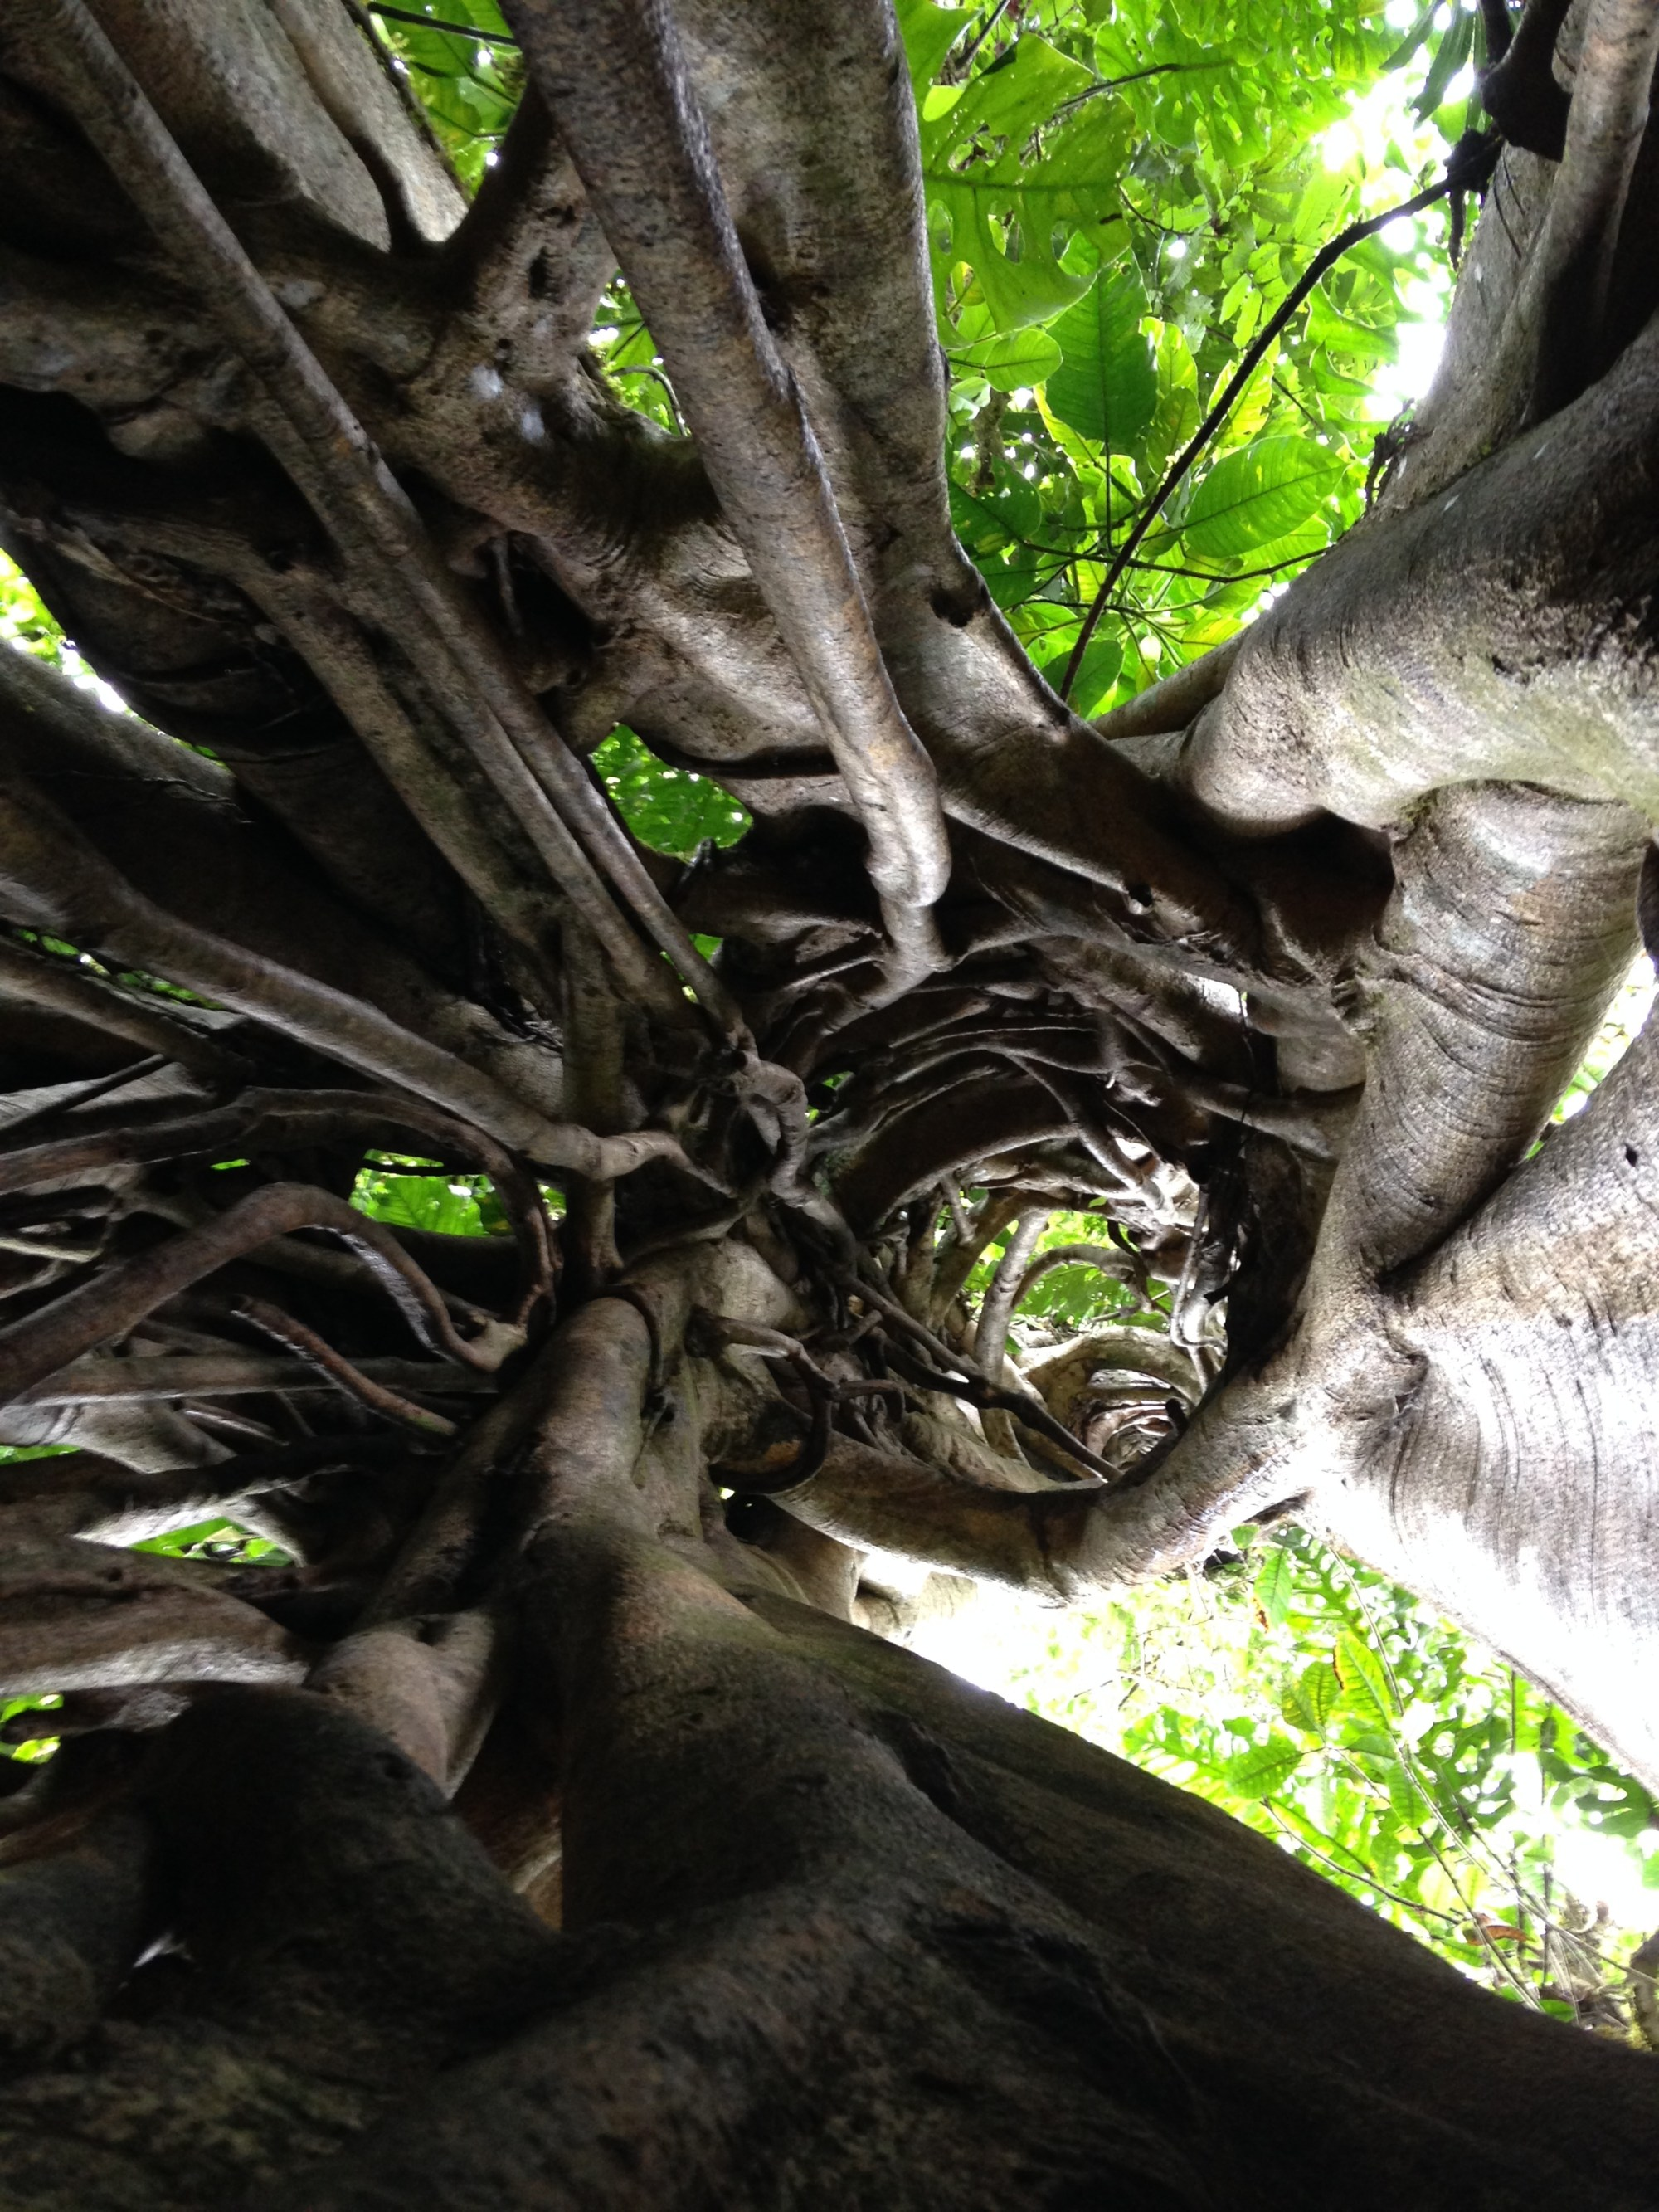 hight resolution of the hollow center of an ancient strangler fig where its host tree once grew and has